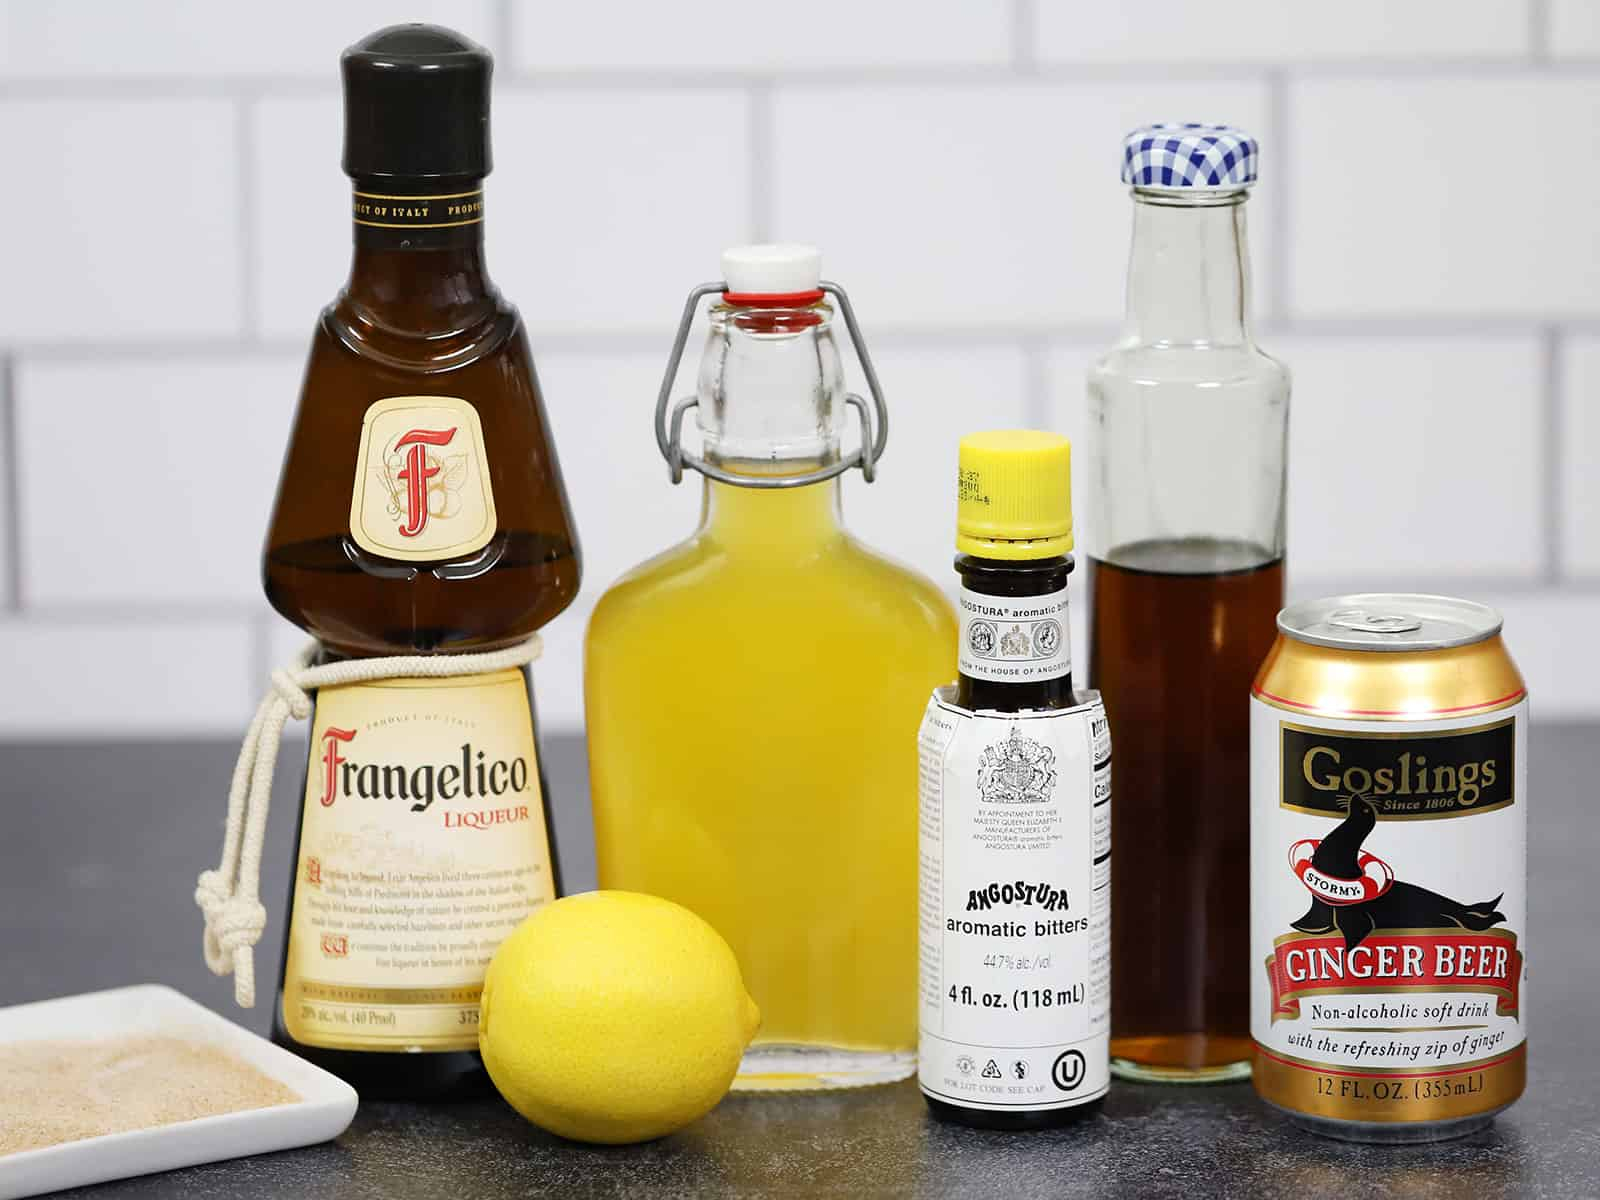 The ingredients for pumpkin pie martinis